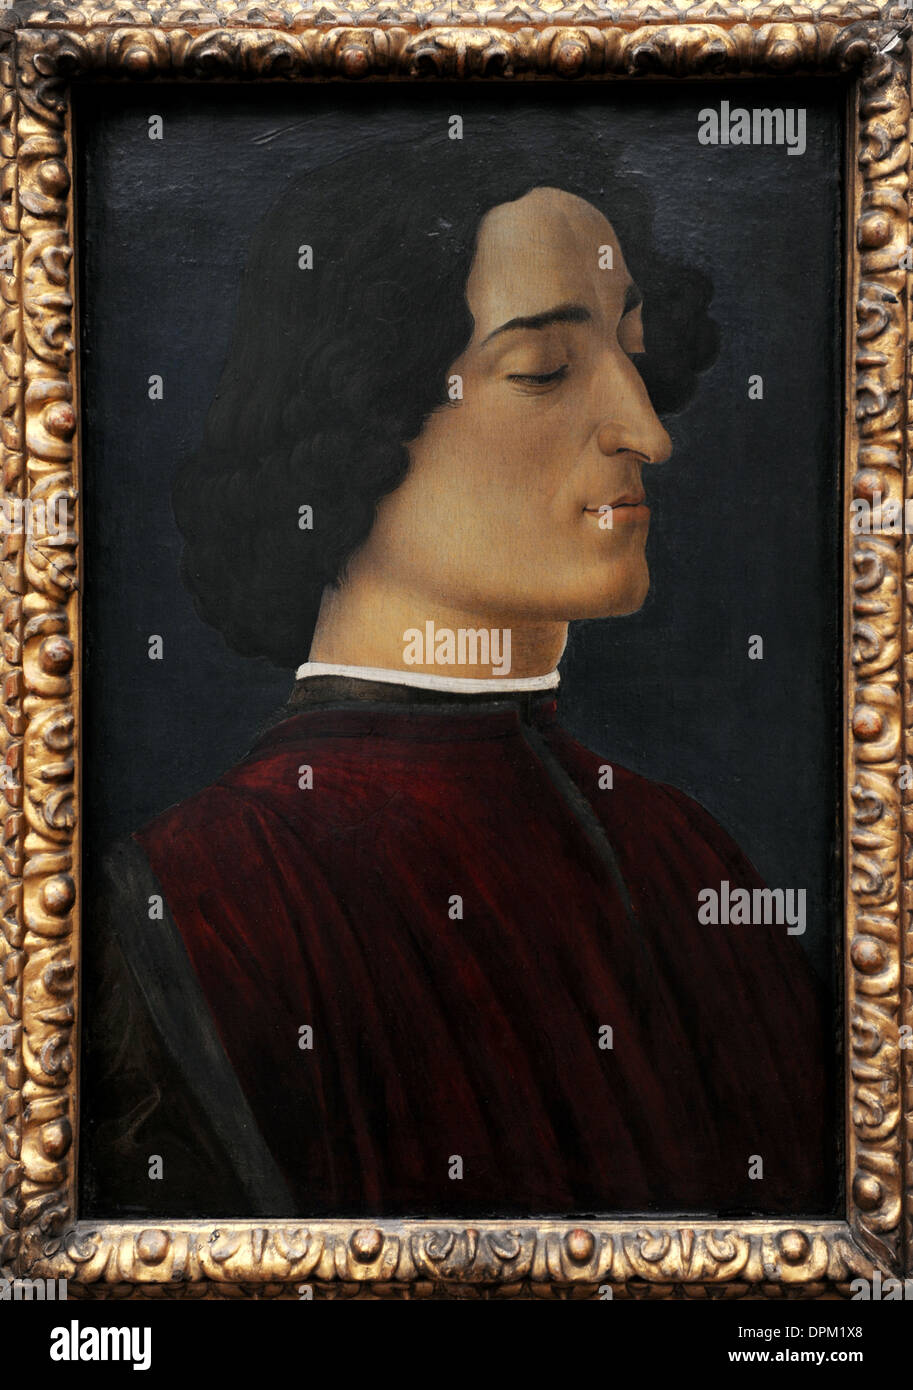 Giuliano de Medici (1453-1478). Co-ruler of Florence. Portrait by Sandro Botticelli (1445-1510), 1478. - Stock Image